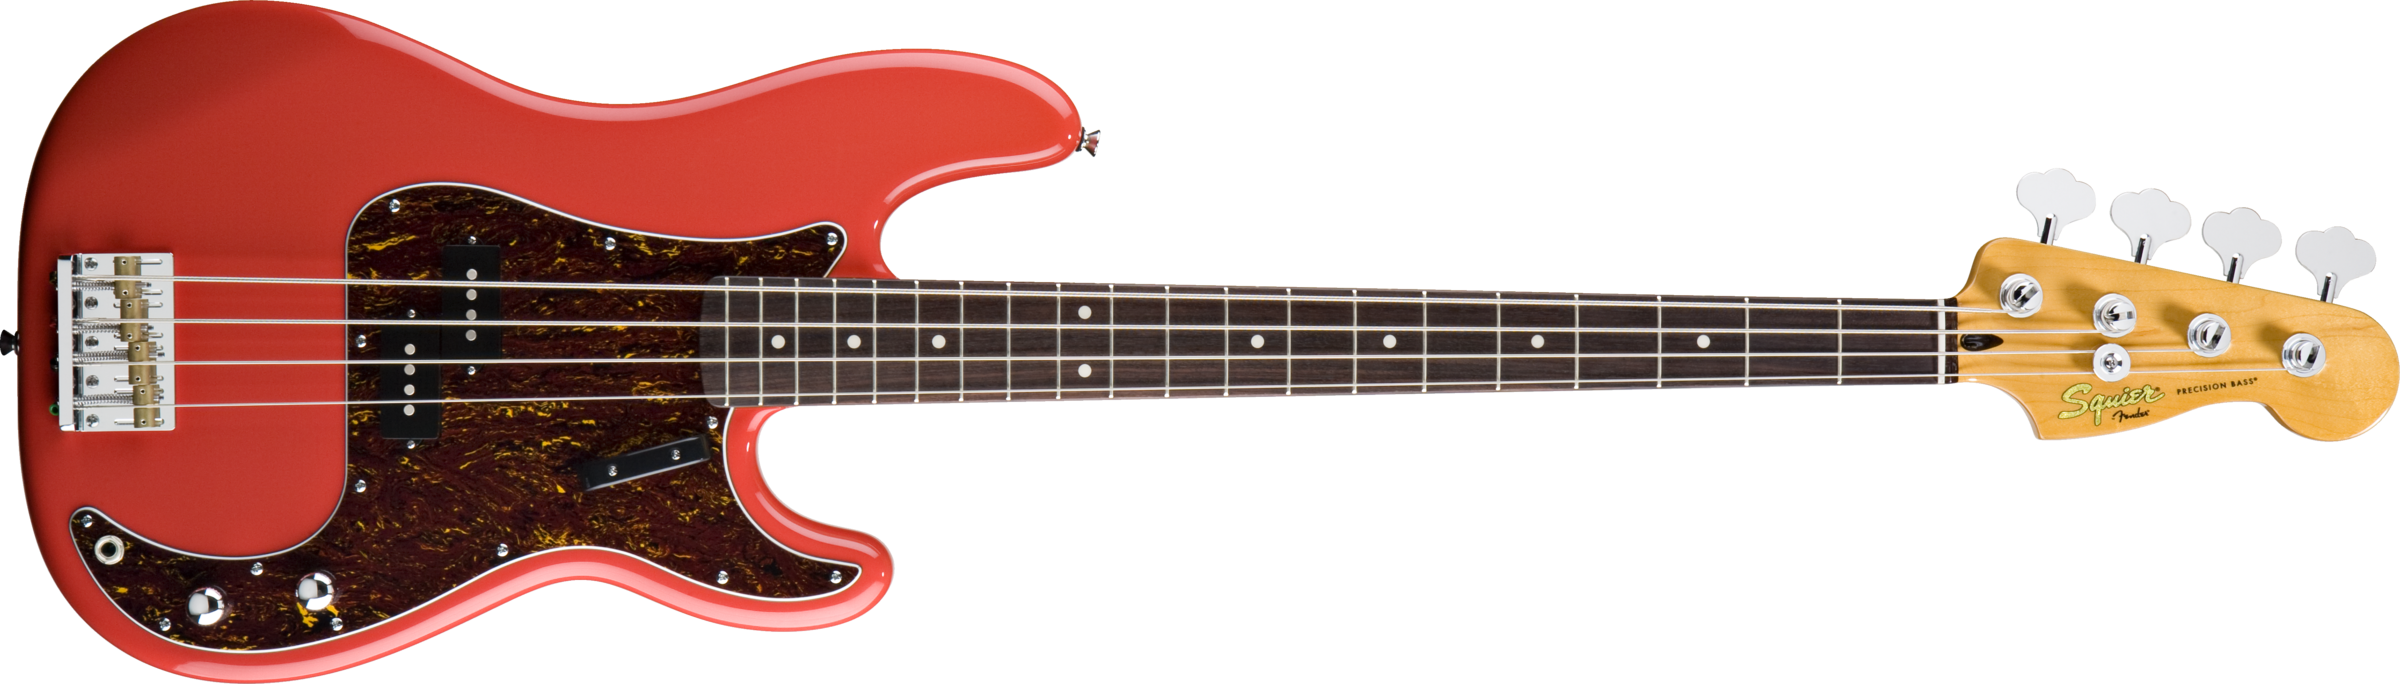 Fender® Forums • View topic - I need a Squier P-bass, what